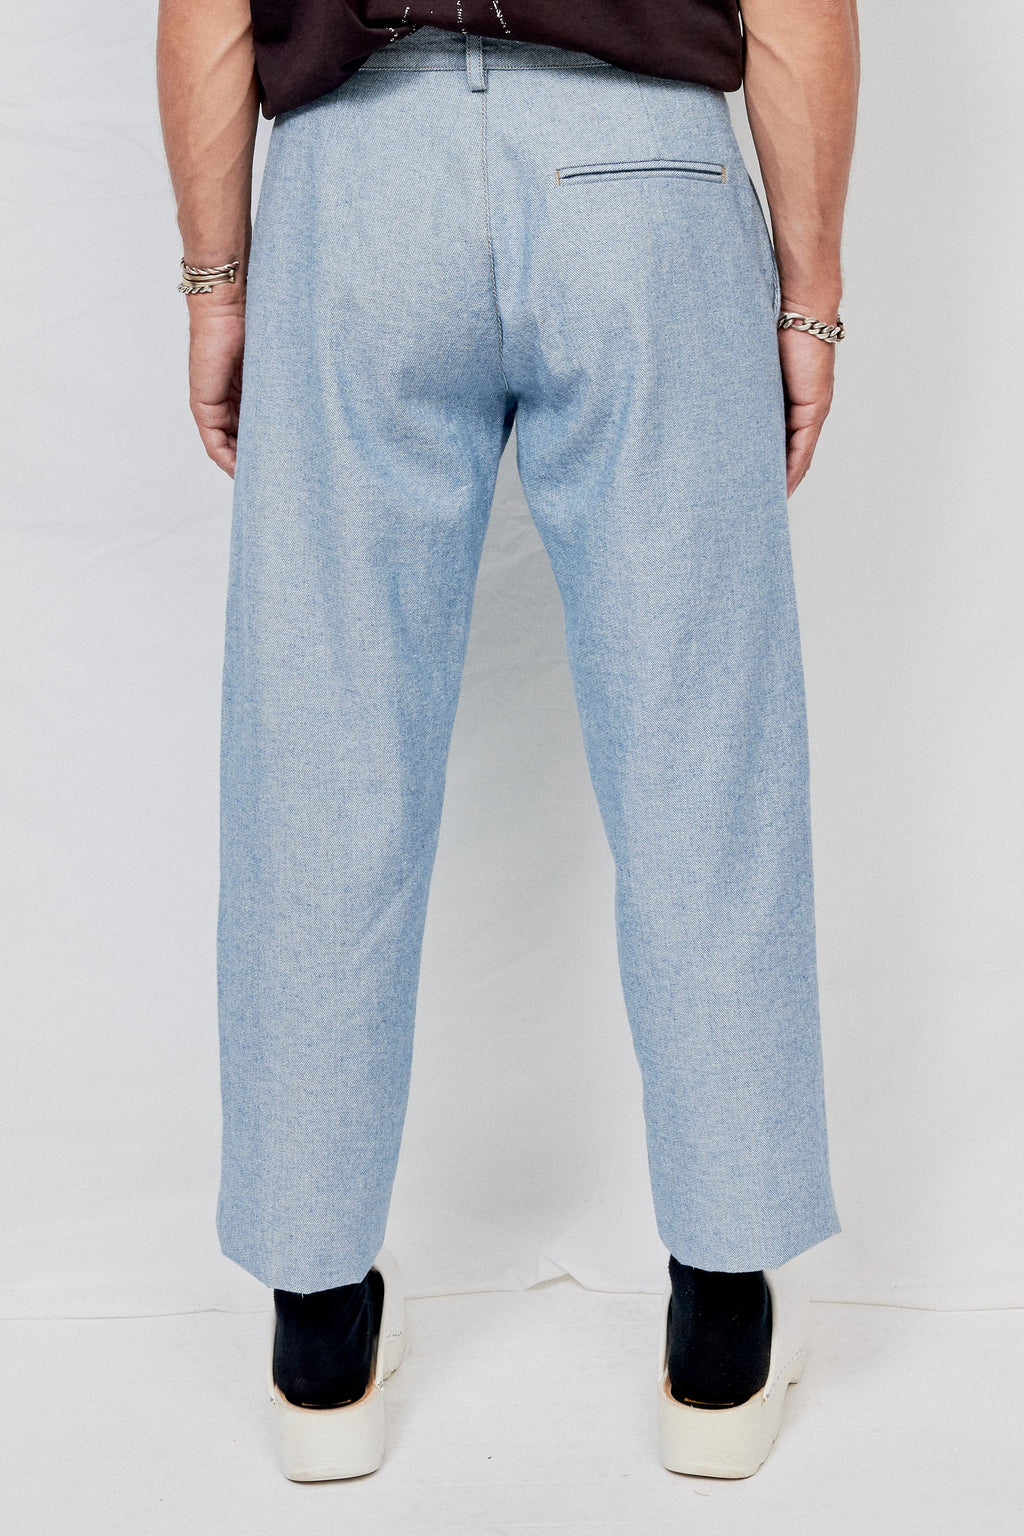 Indigo Denim Crop Pant